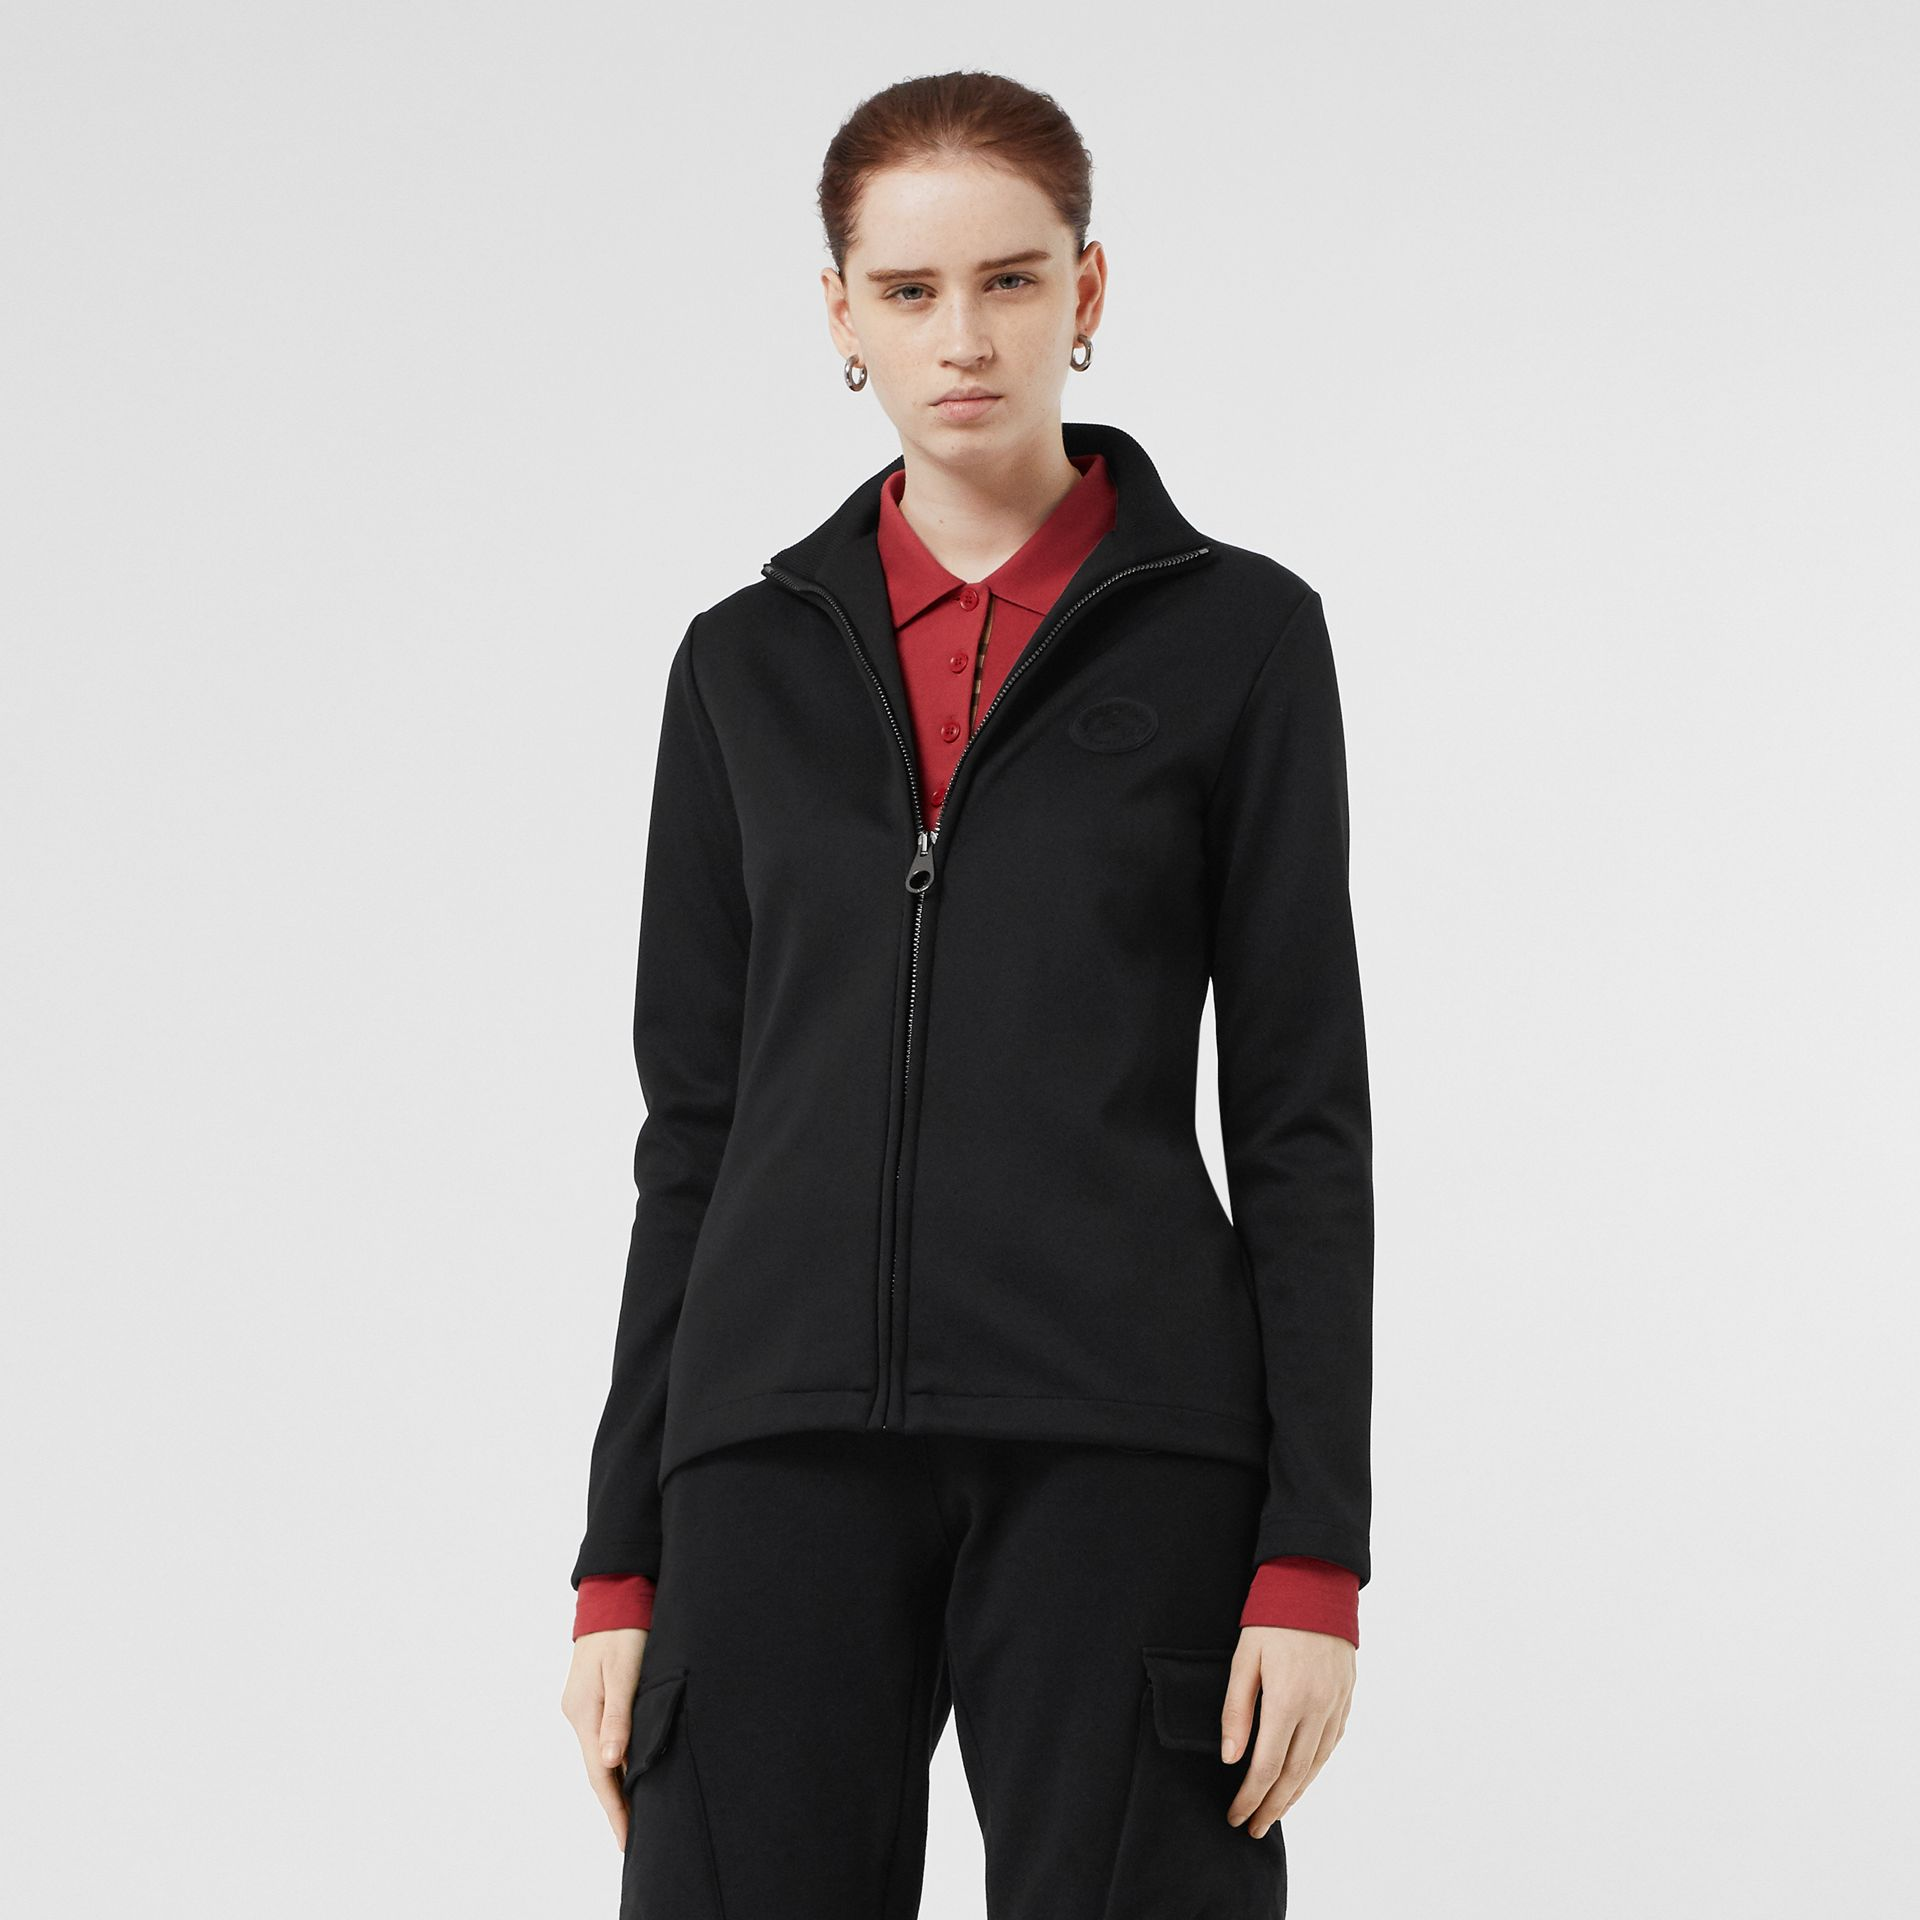 Crest Detail Funnel Neck Track Top in Black - Women | Burberry - gallery image 4